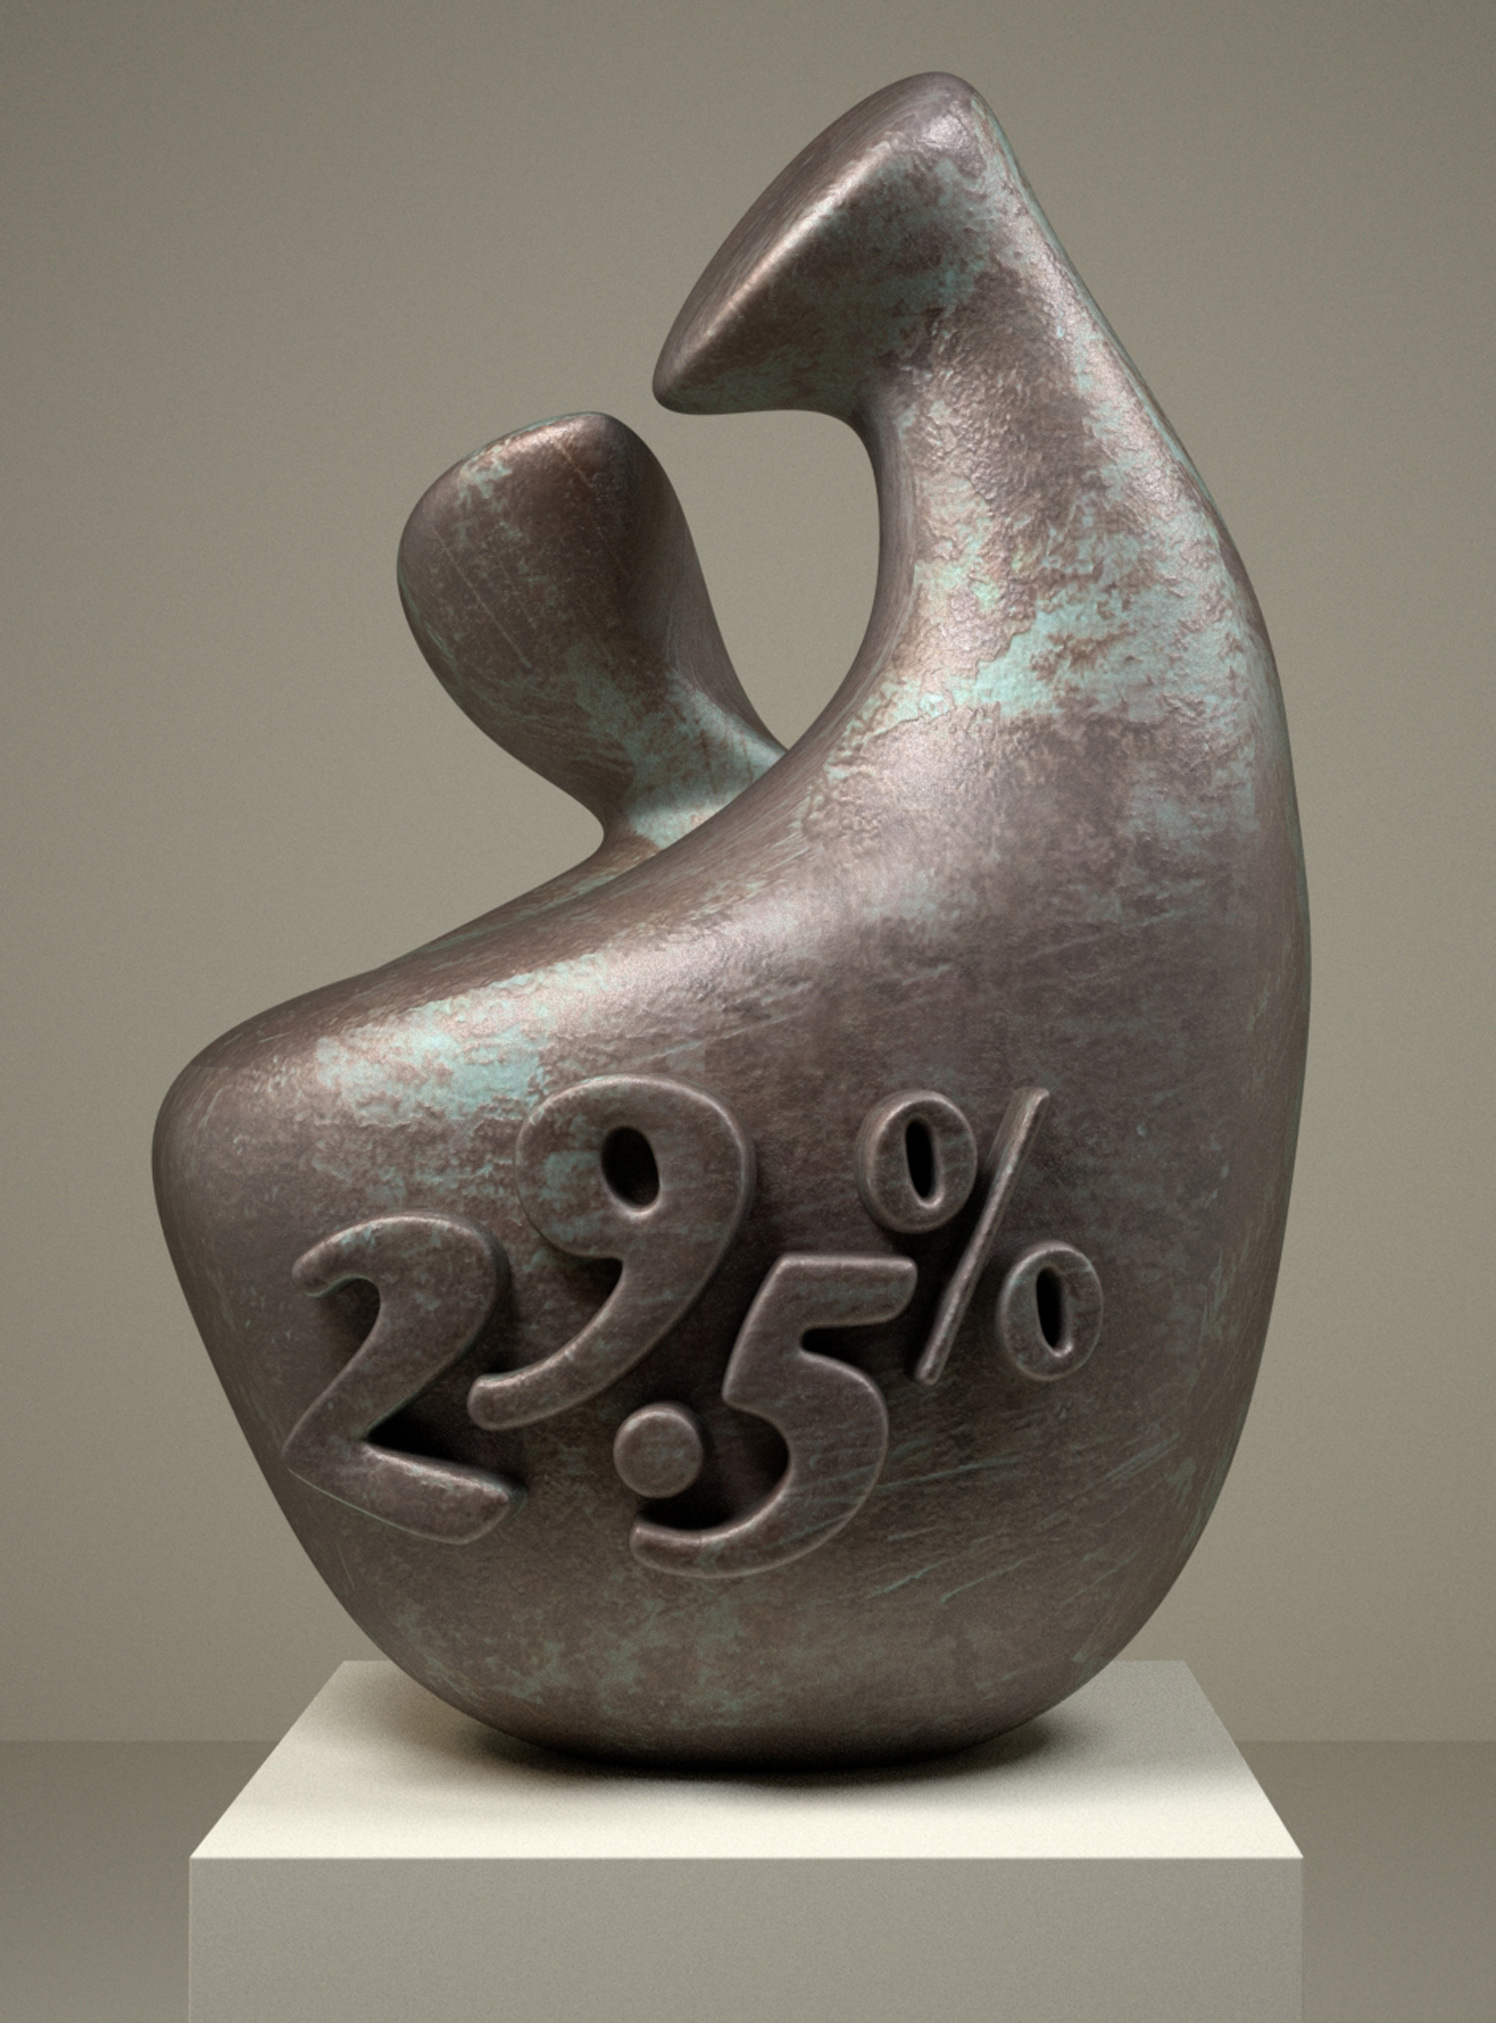 29.5% Henry Moore Sculpture